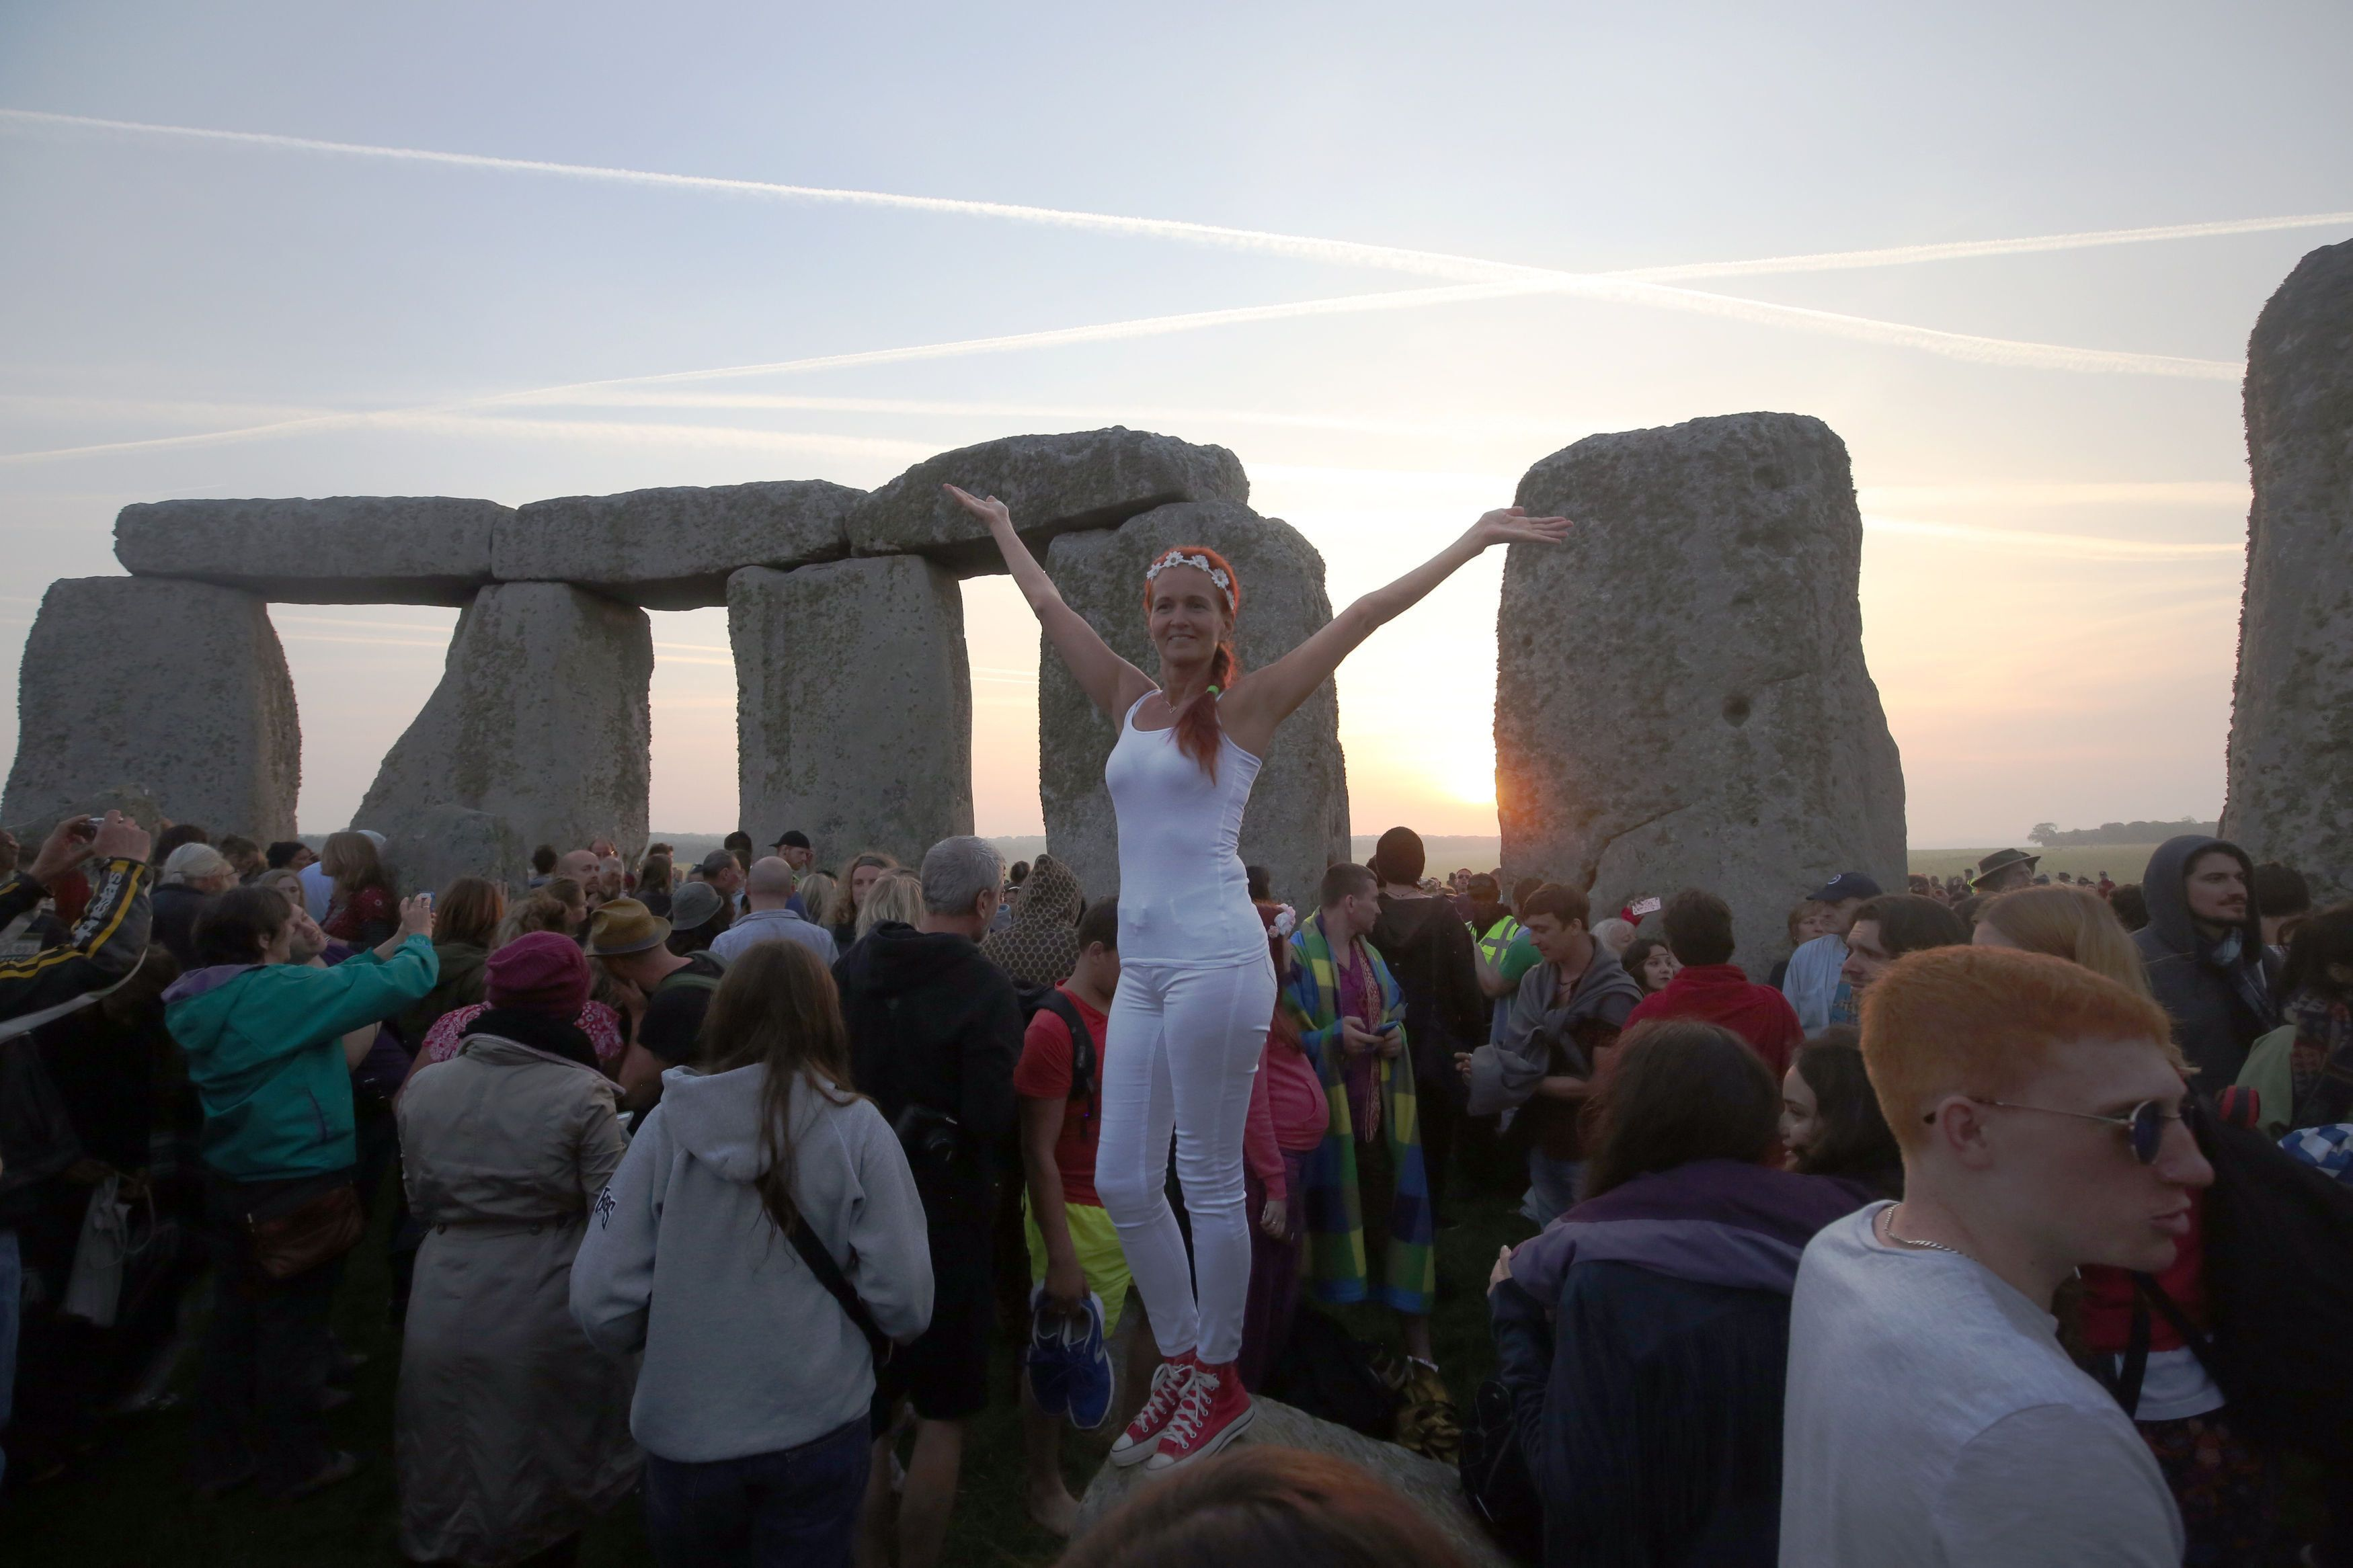 Armed Police On Patrol As Thousands Gather For Summer Solstice